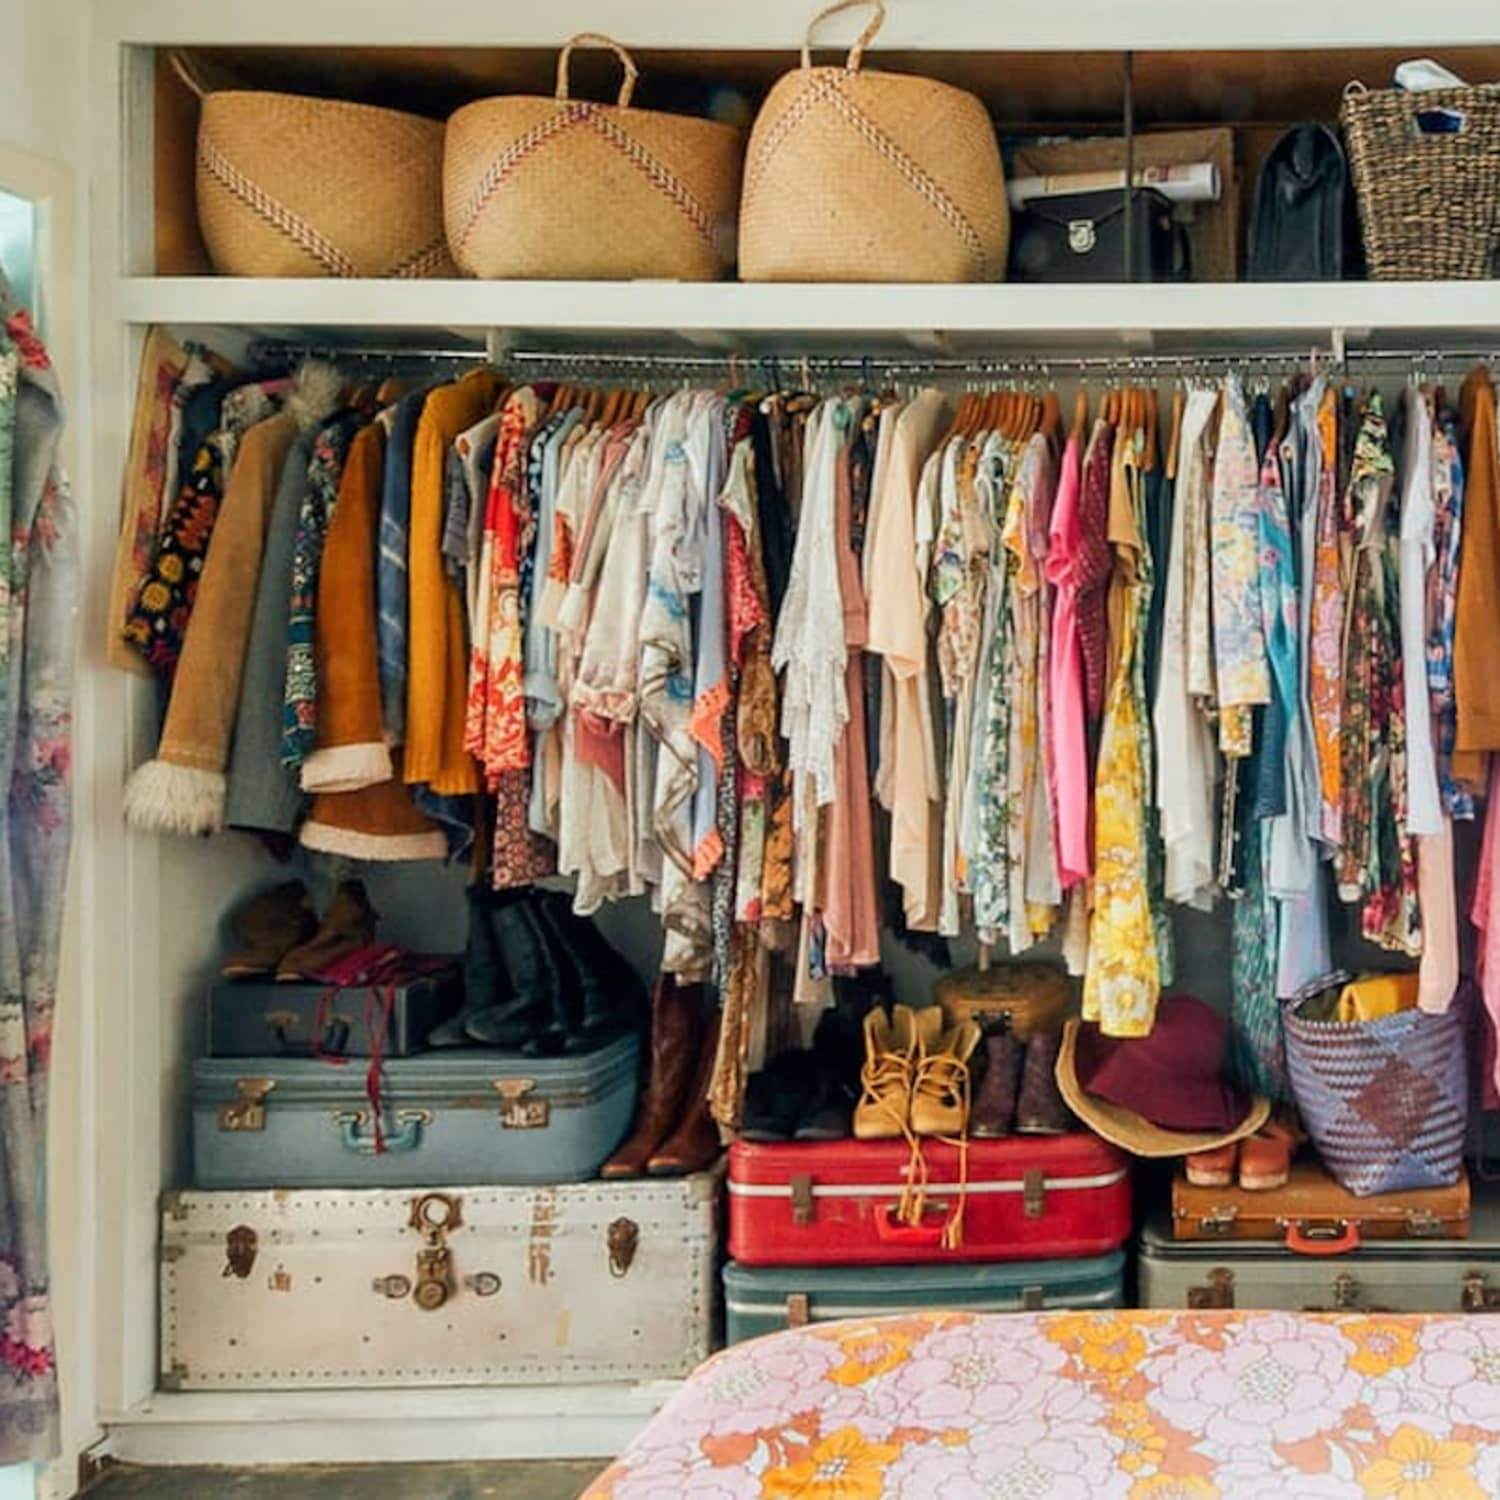 Where to Sell, Donate or Recycle Your Used Clothing | Apartment Therapy